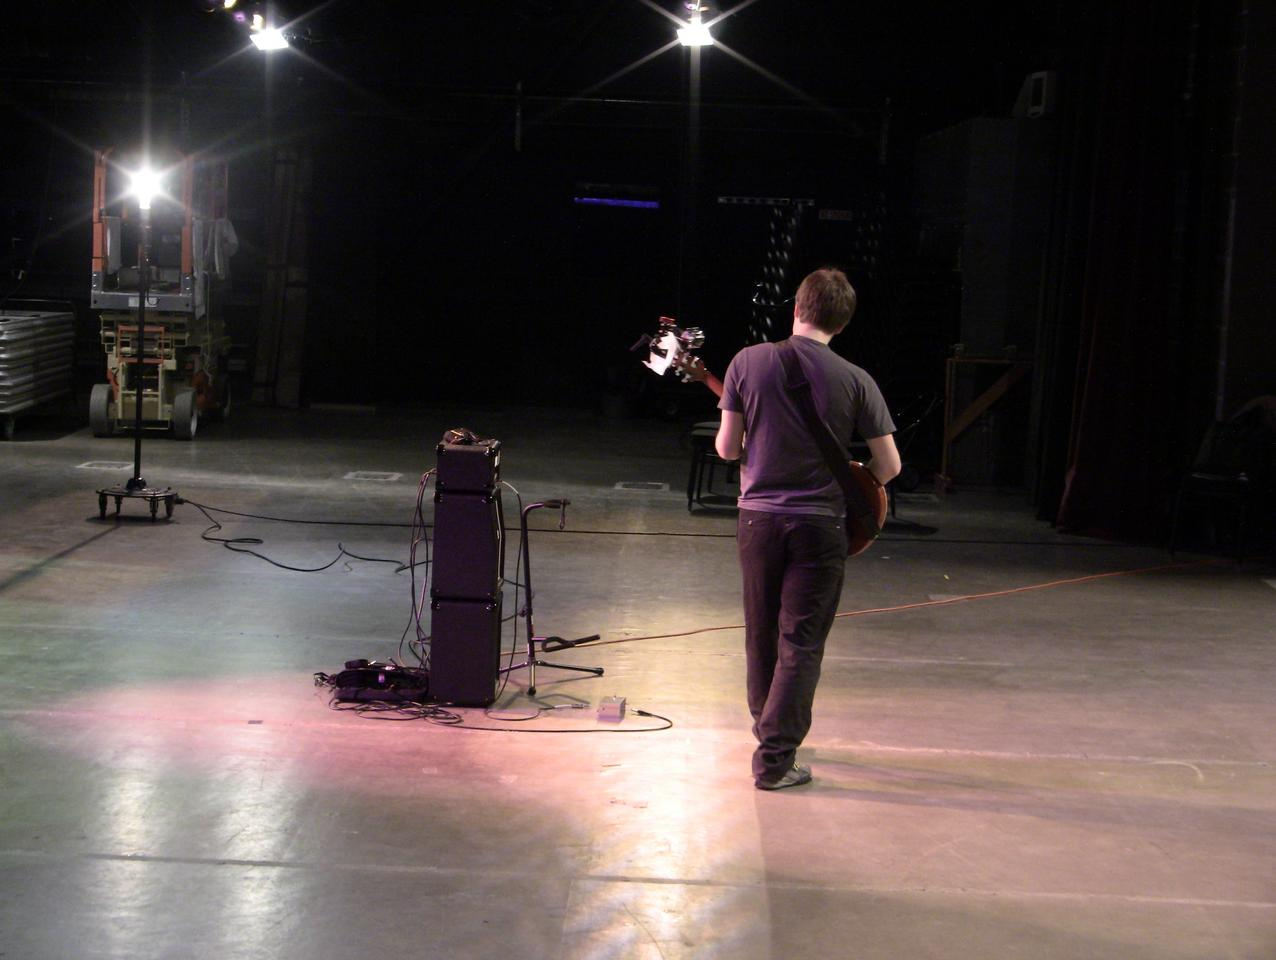 The Ghost Pedal gives a guitarist the freedom to roam the stage area and wirelessly control a virtual wah distortion effect whenever and wherever the mood grabs